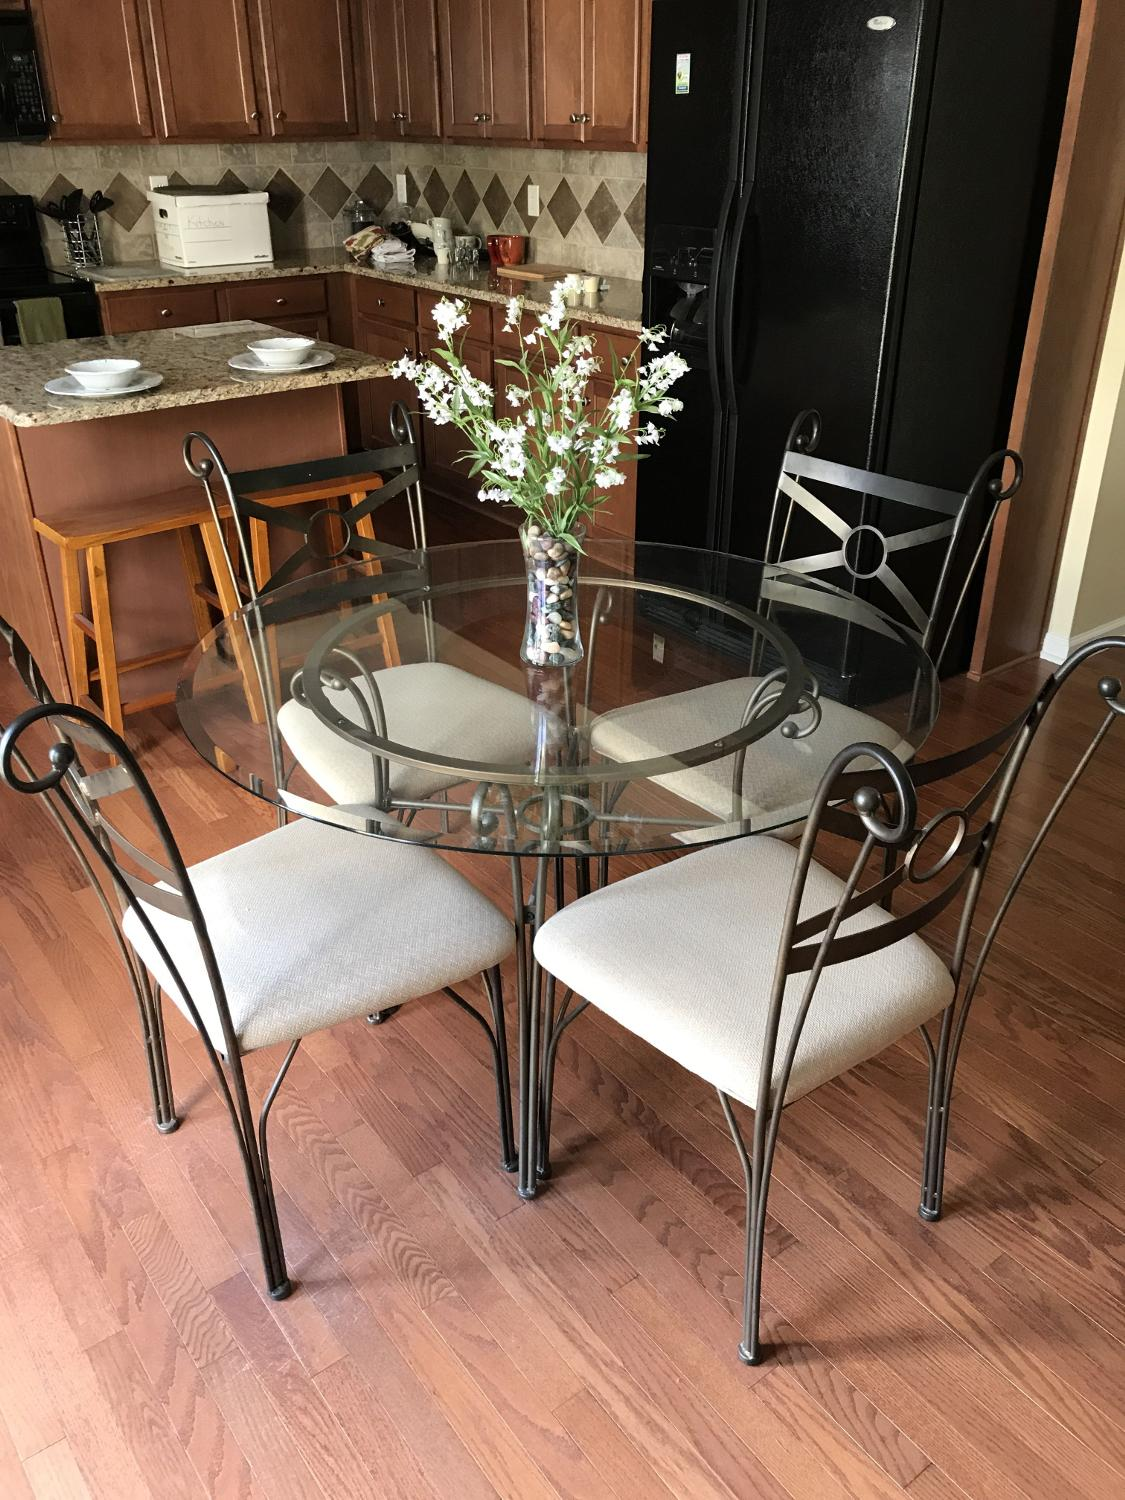 Find More 46 Glass Kitchen Table With 4 Chairs For Sale At Up To 90 Off Concord Nc